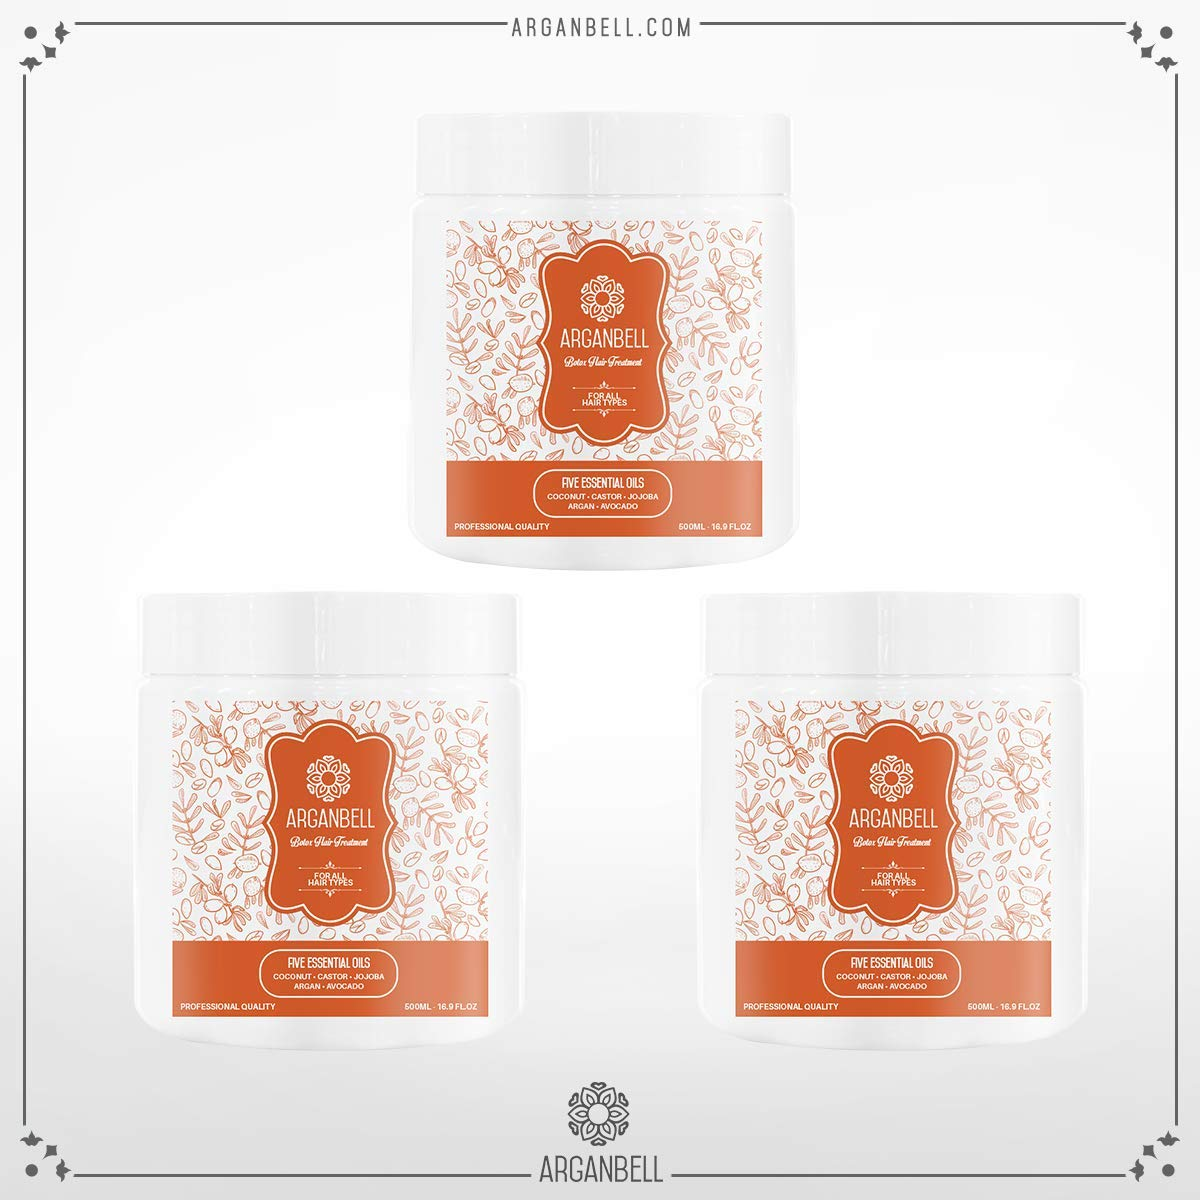 ARGANBELL Botox Hair Treatment for All HairTypes - Five Essential Oils - Coconut - Castor - Jojoba - Argan - Avocado.To Provides Smoothness, Vitamins, Proteins and Minerals. 3 Pack Bundle 58.20 Fl Oz.